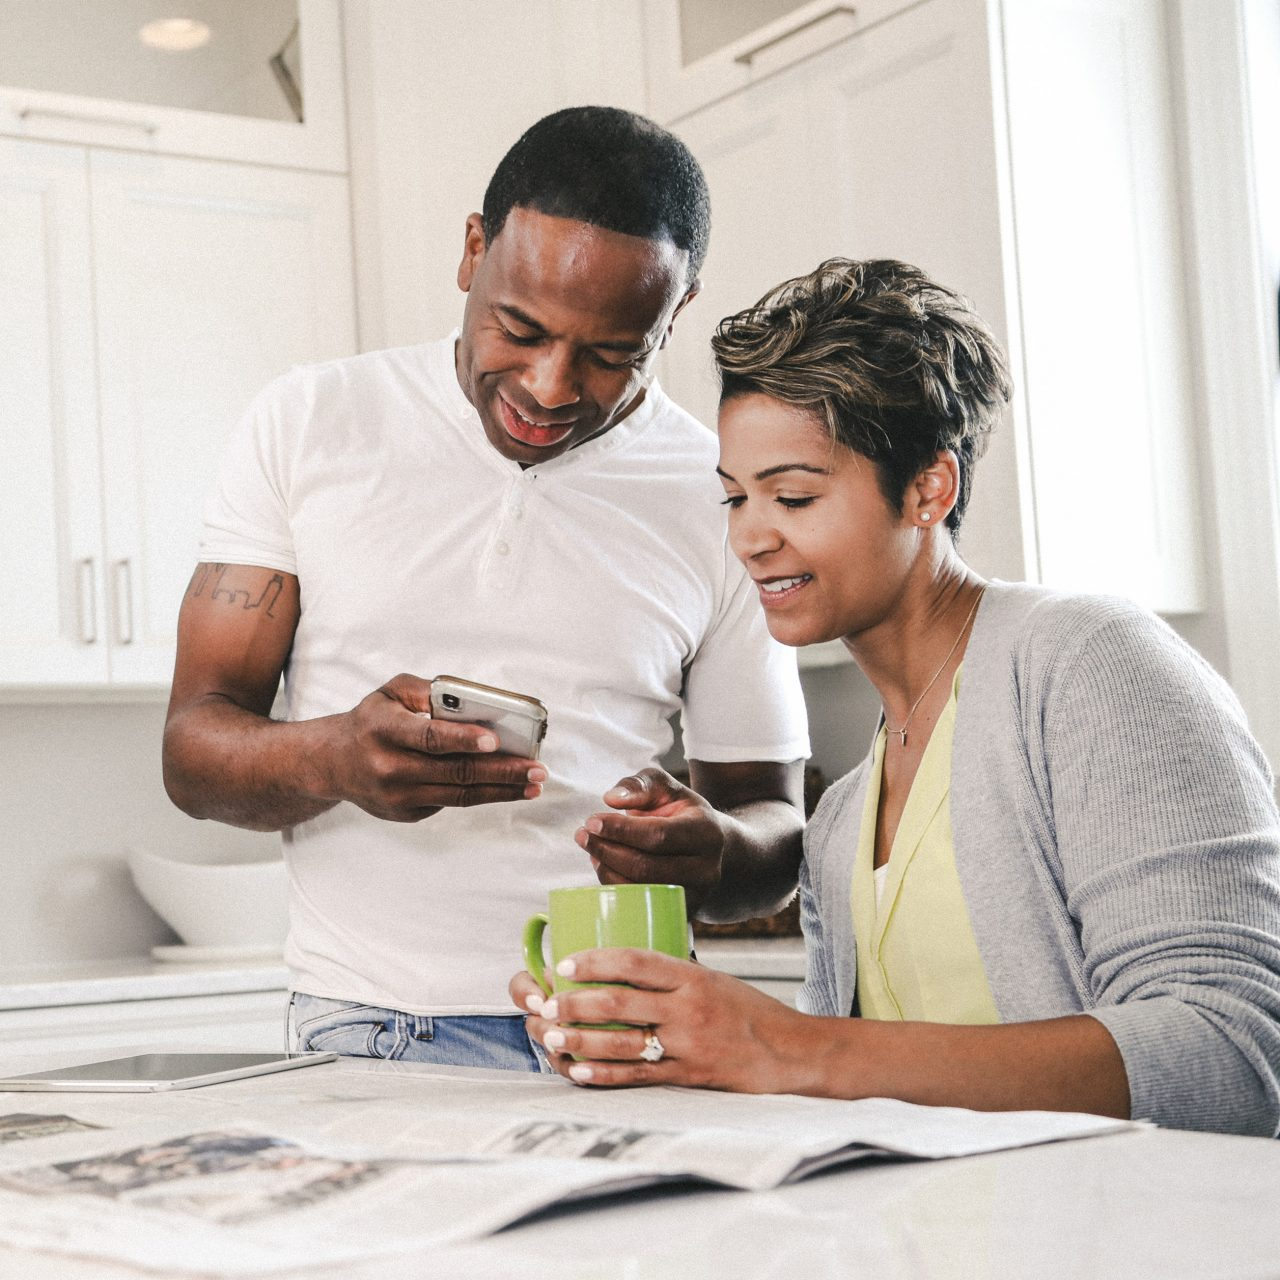 Couple looking at devices and news paper in kitchen drinking coffee